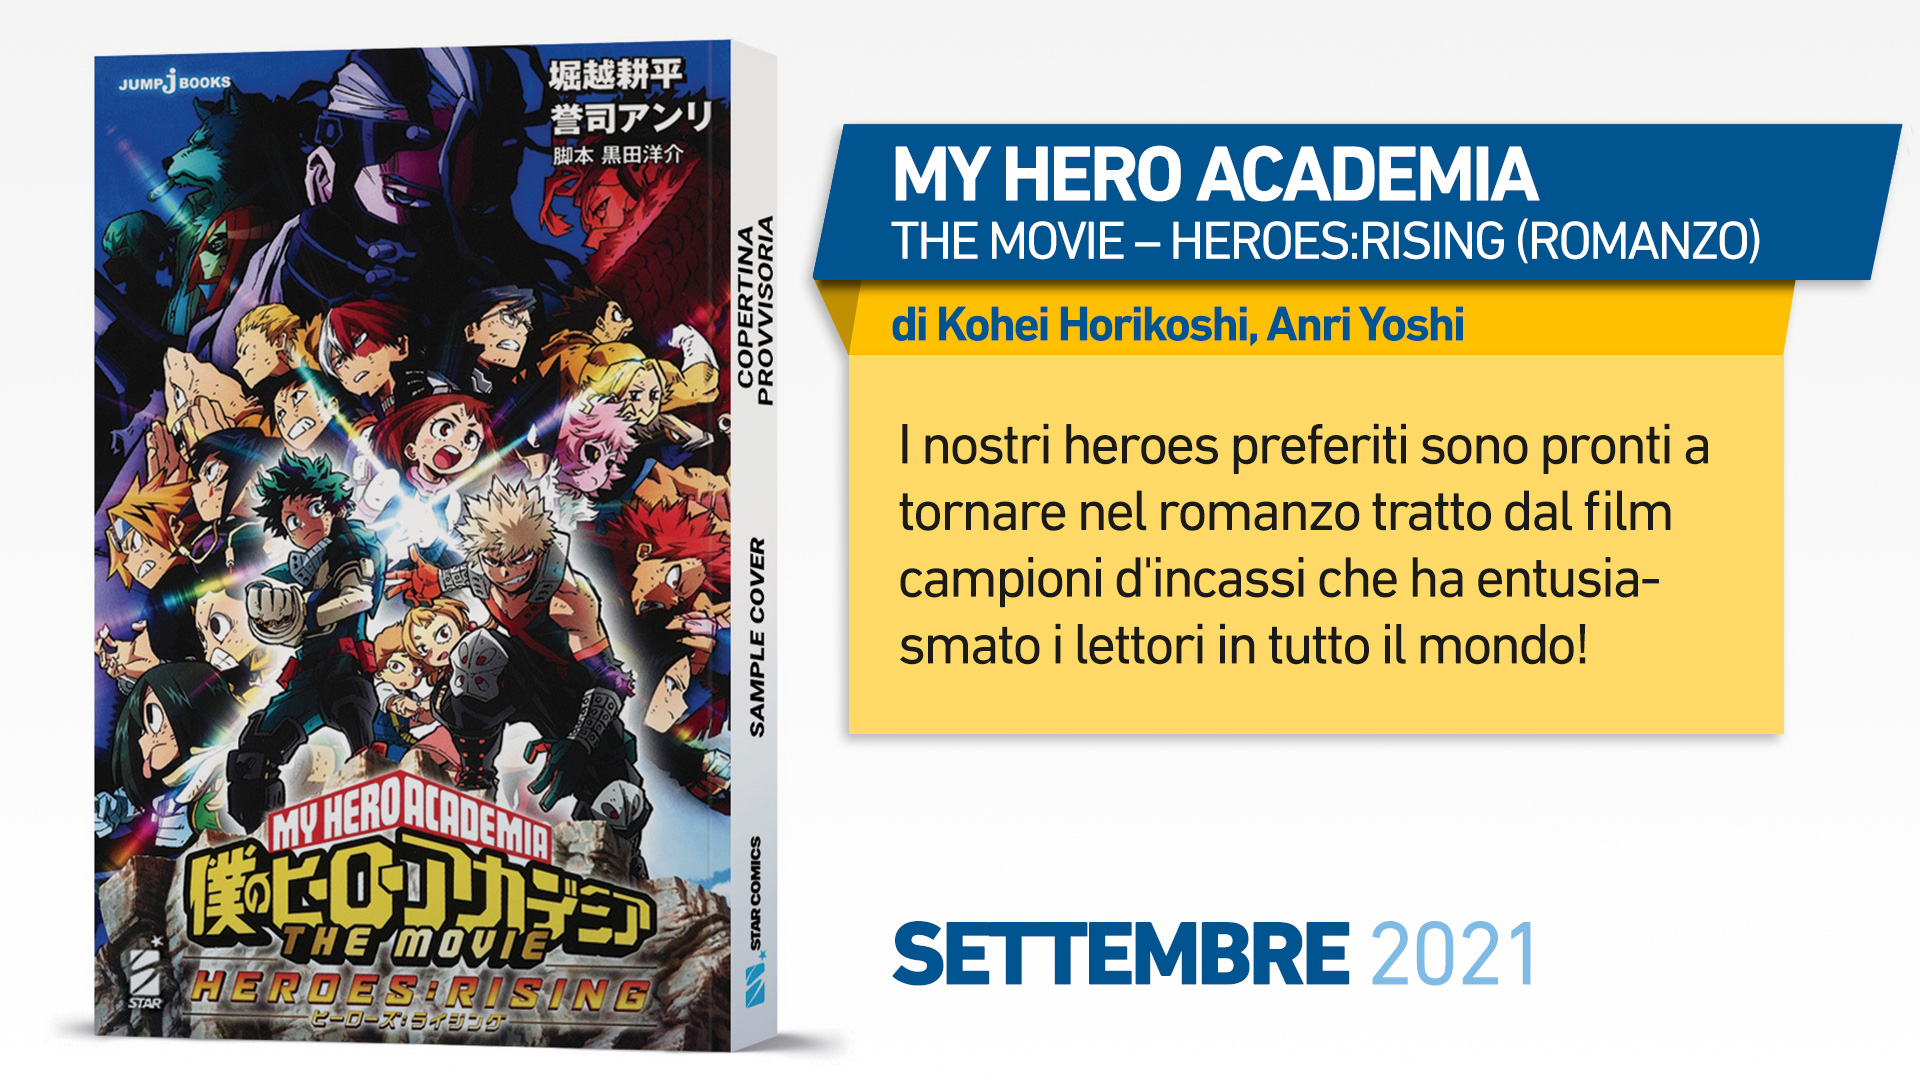 MY HERO ACADEMIA – THE MOVIE – HEROES:RISING (ROMANZO)